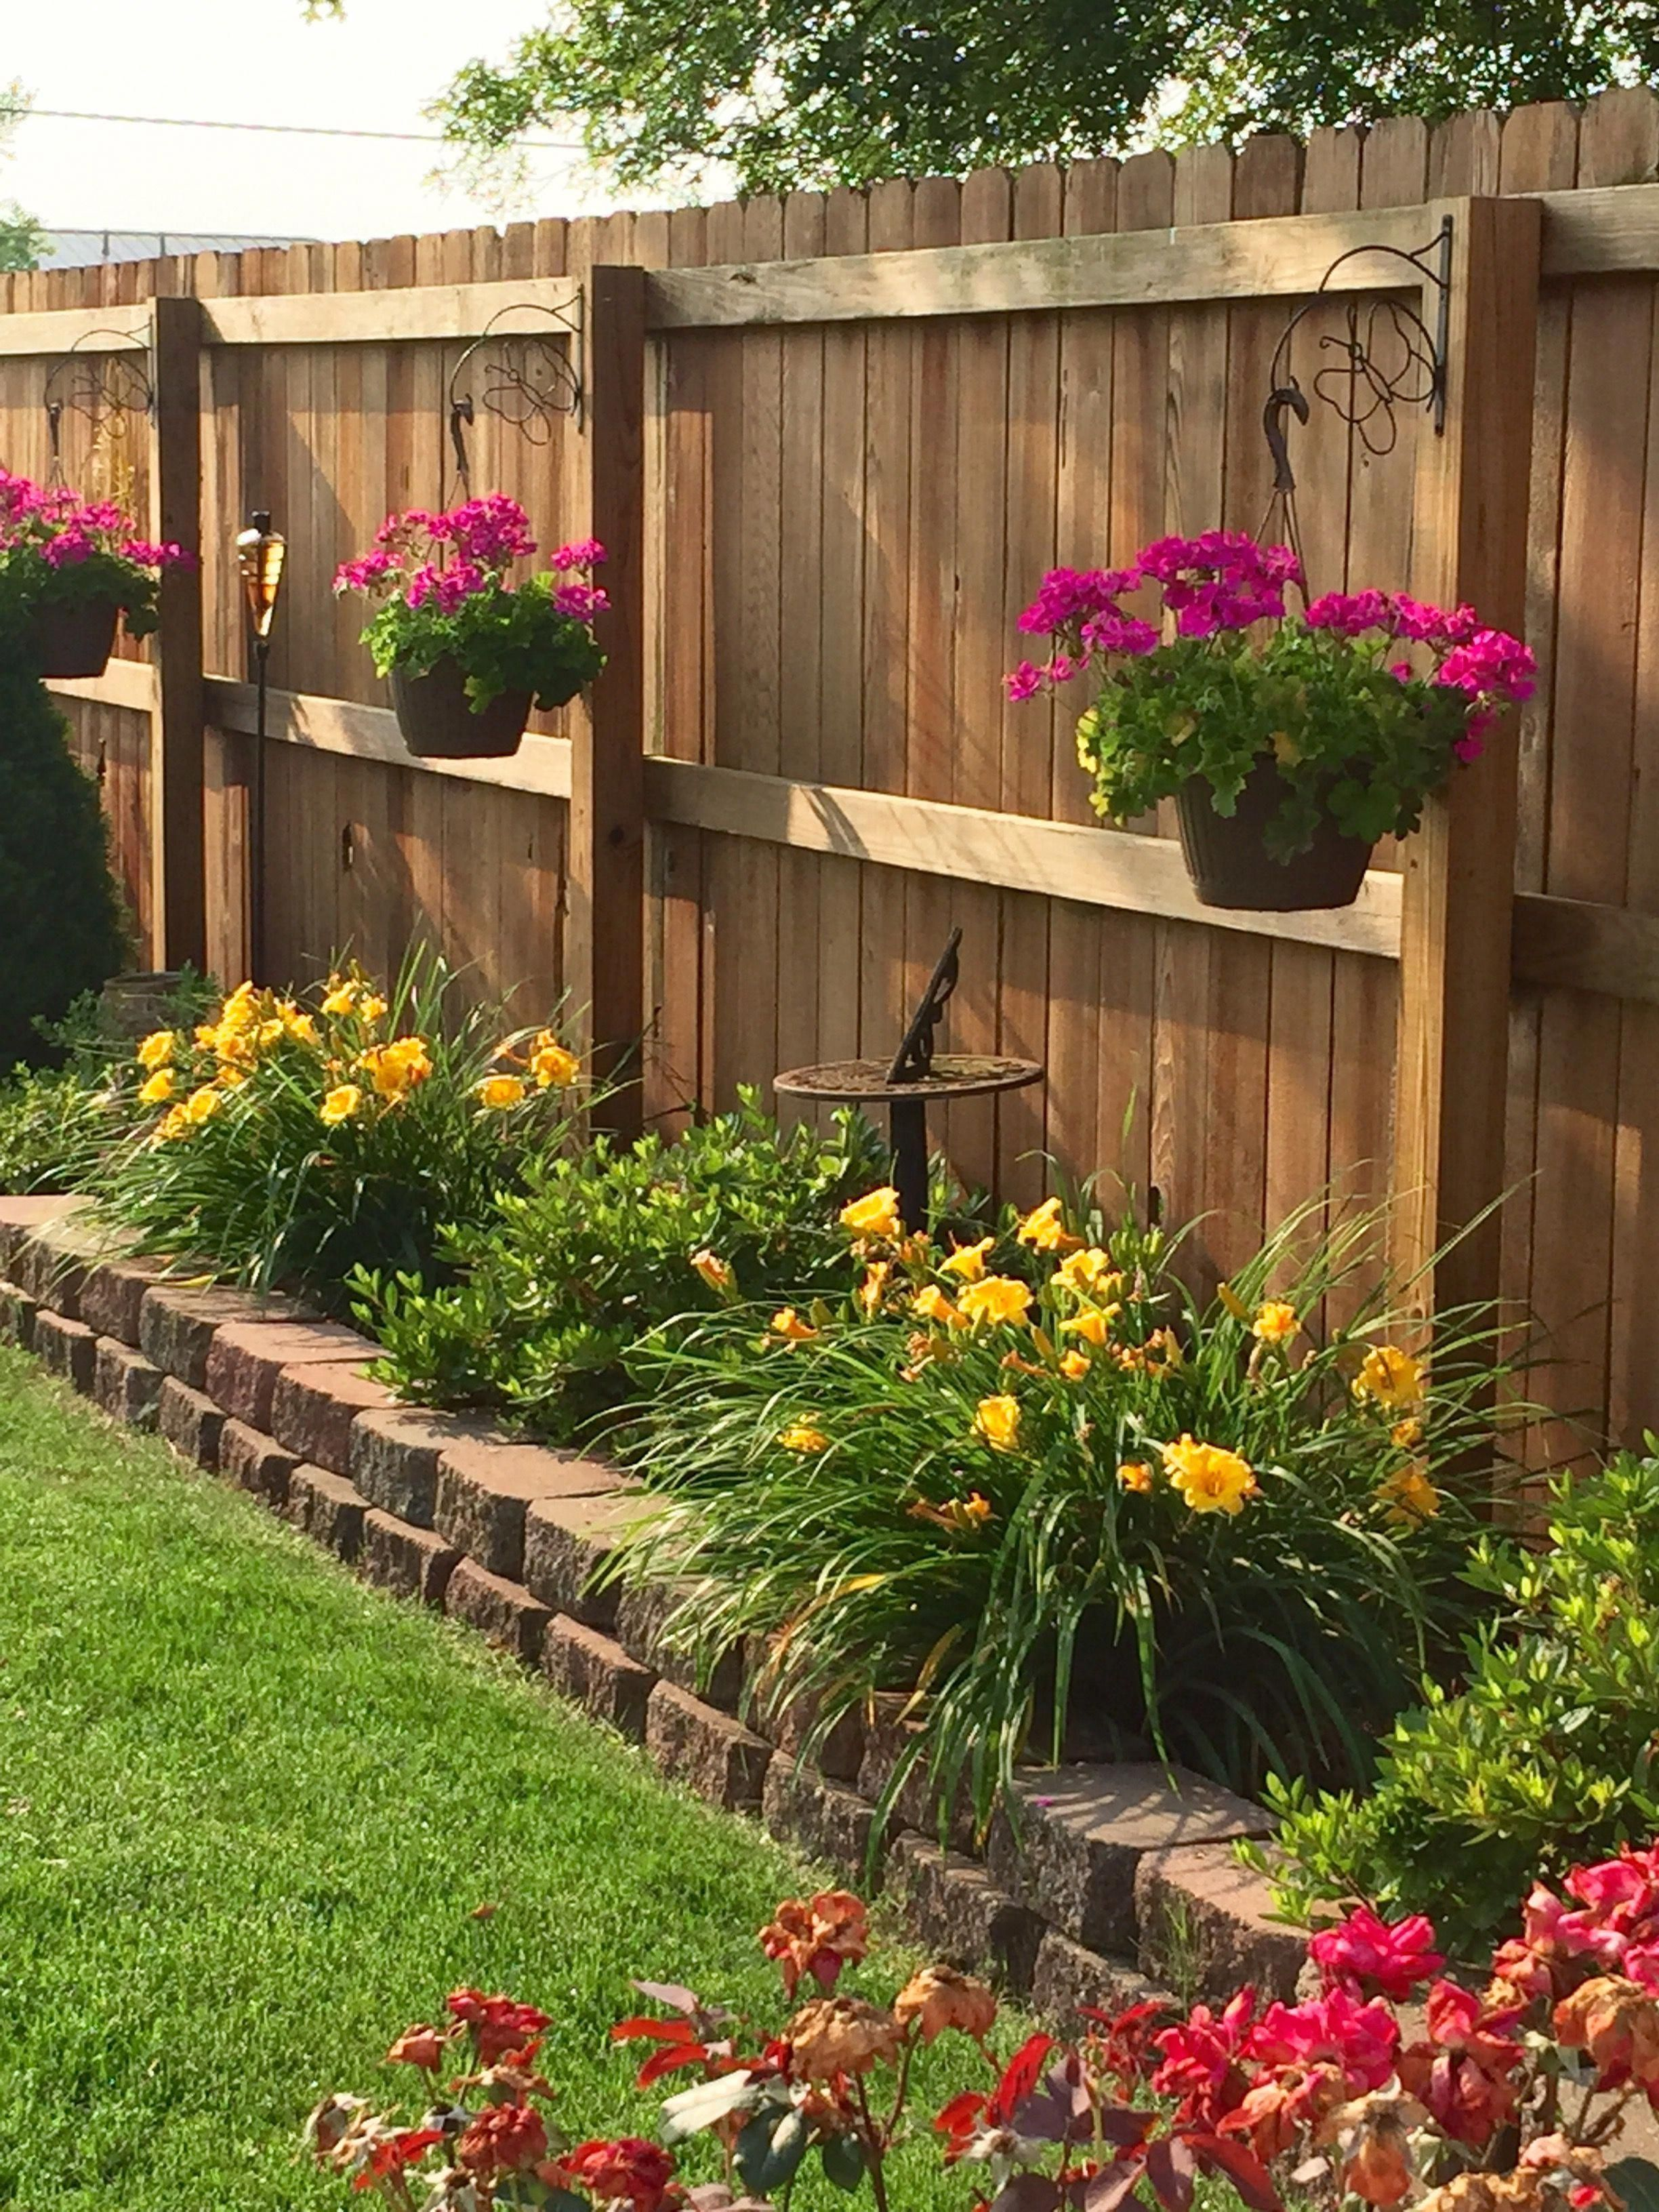 All about backyard landscaping ideas on a budget, small ... on Small Sloped Backyard Ideas On A Budget id=69345